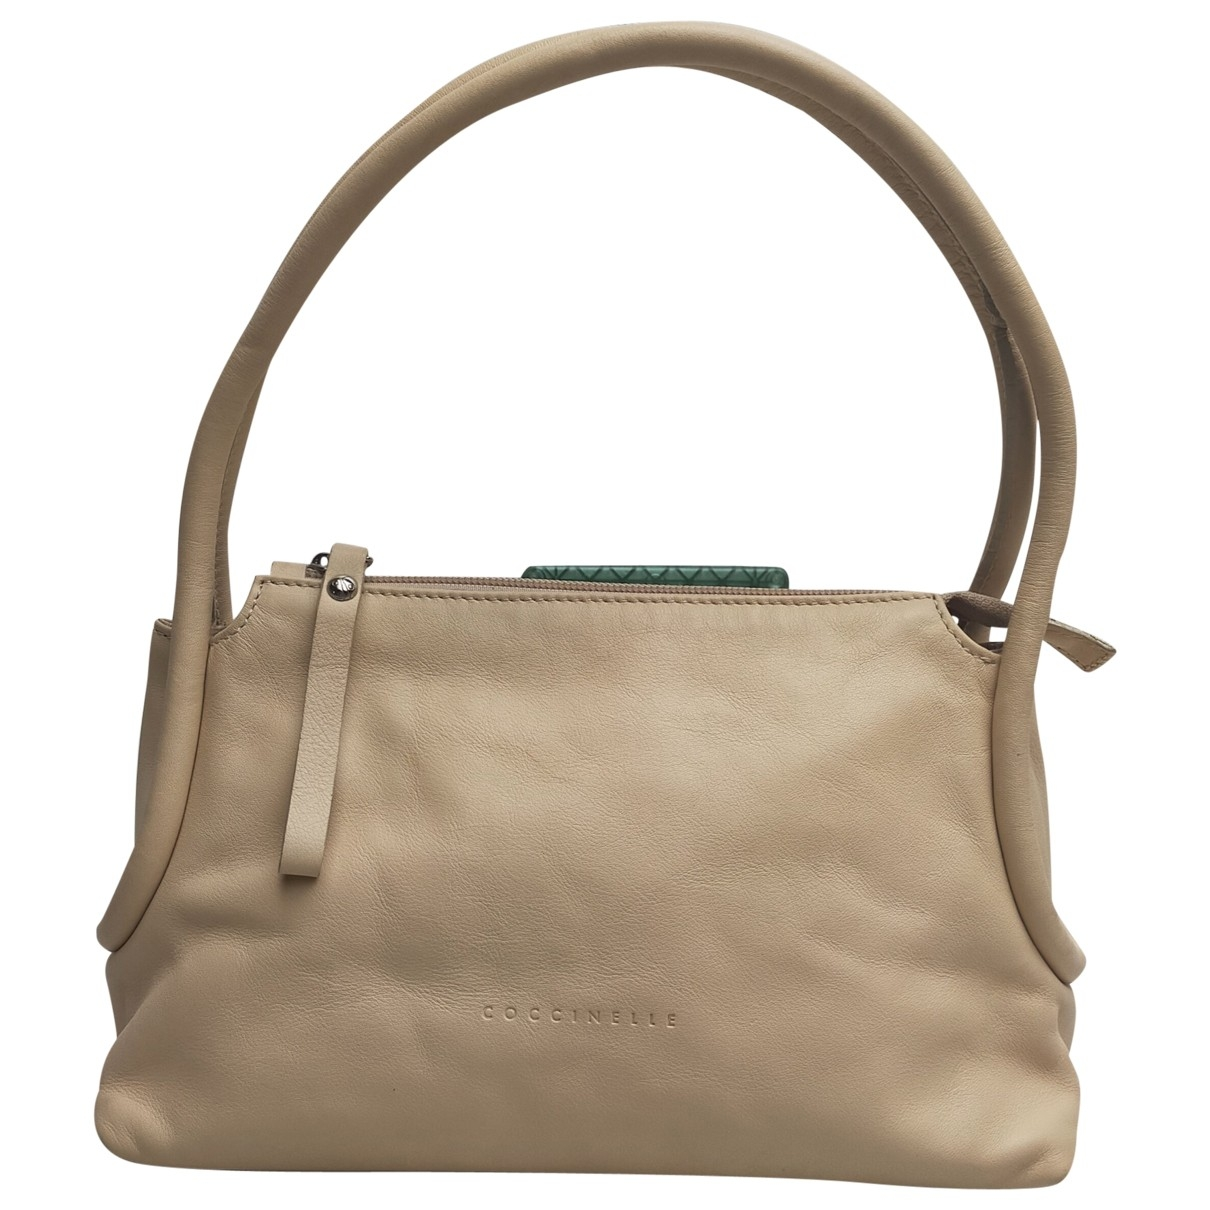 Coccinelle \N Leather handbag for Women \N